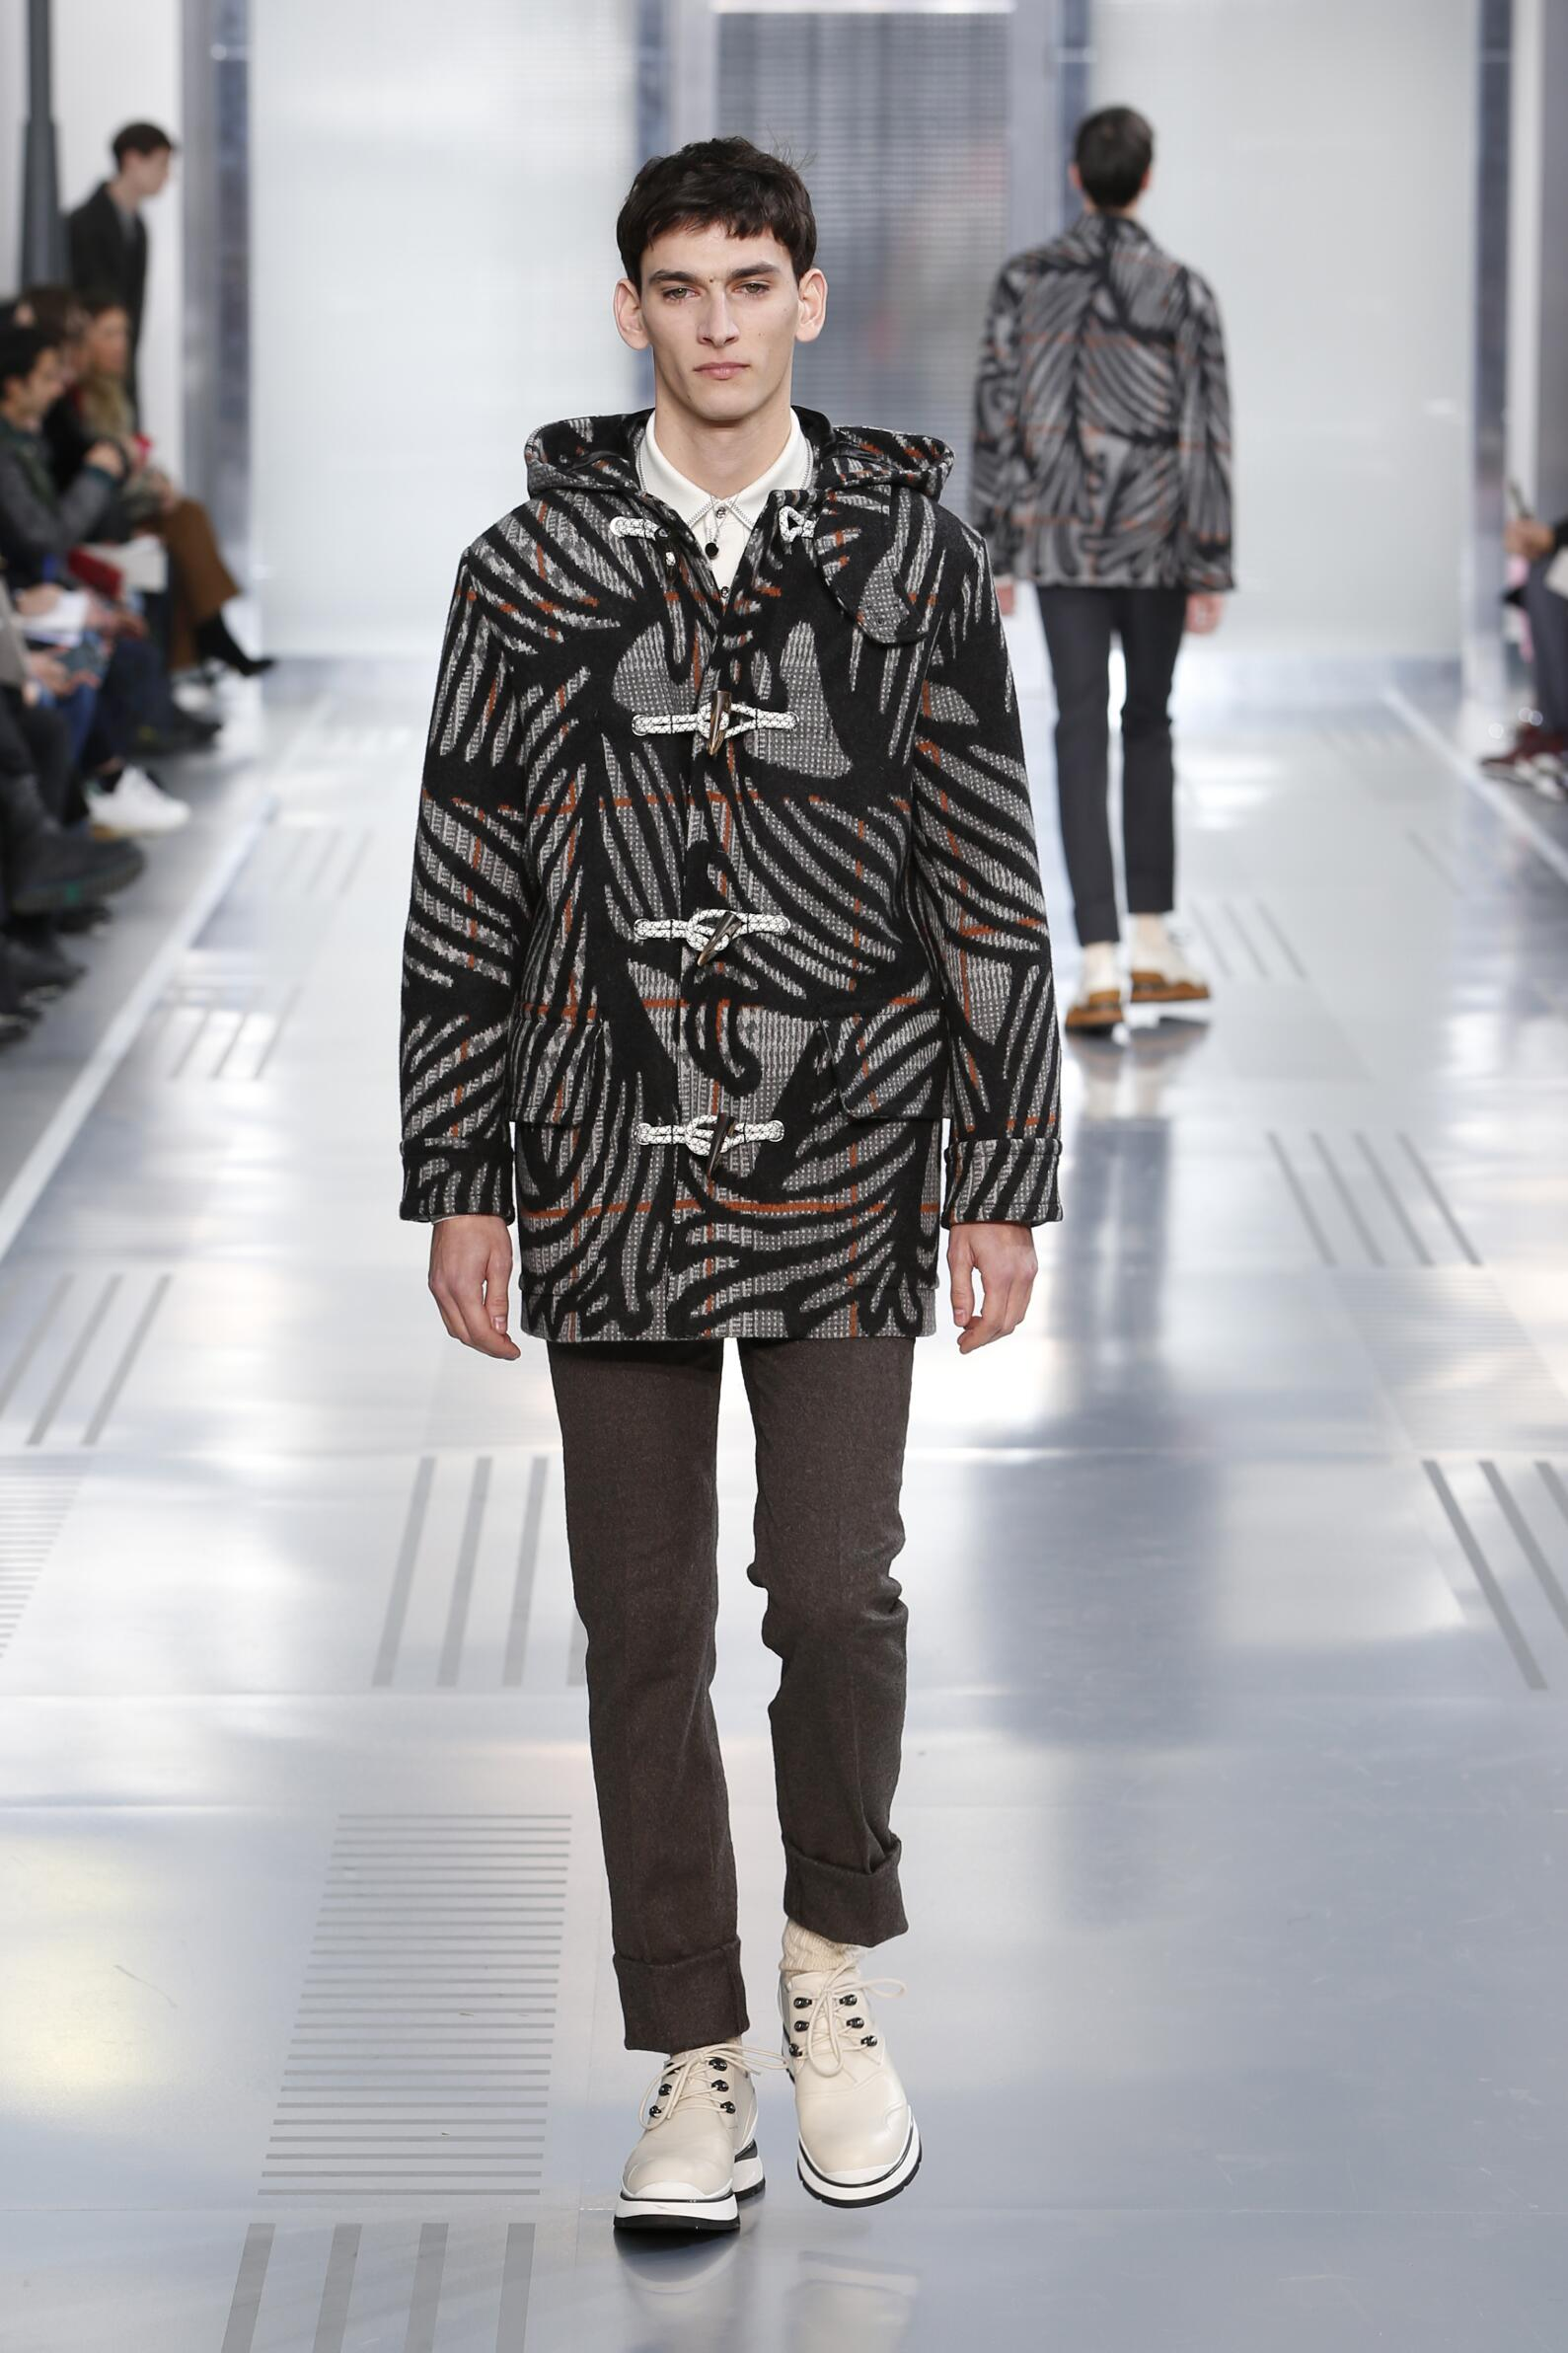 Runway Louis Vuitton Fall Winter 2015 16 Men's Collection Paris Fashion Week